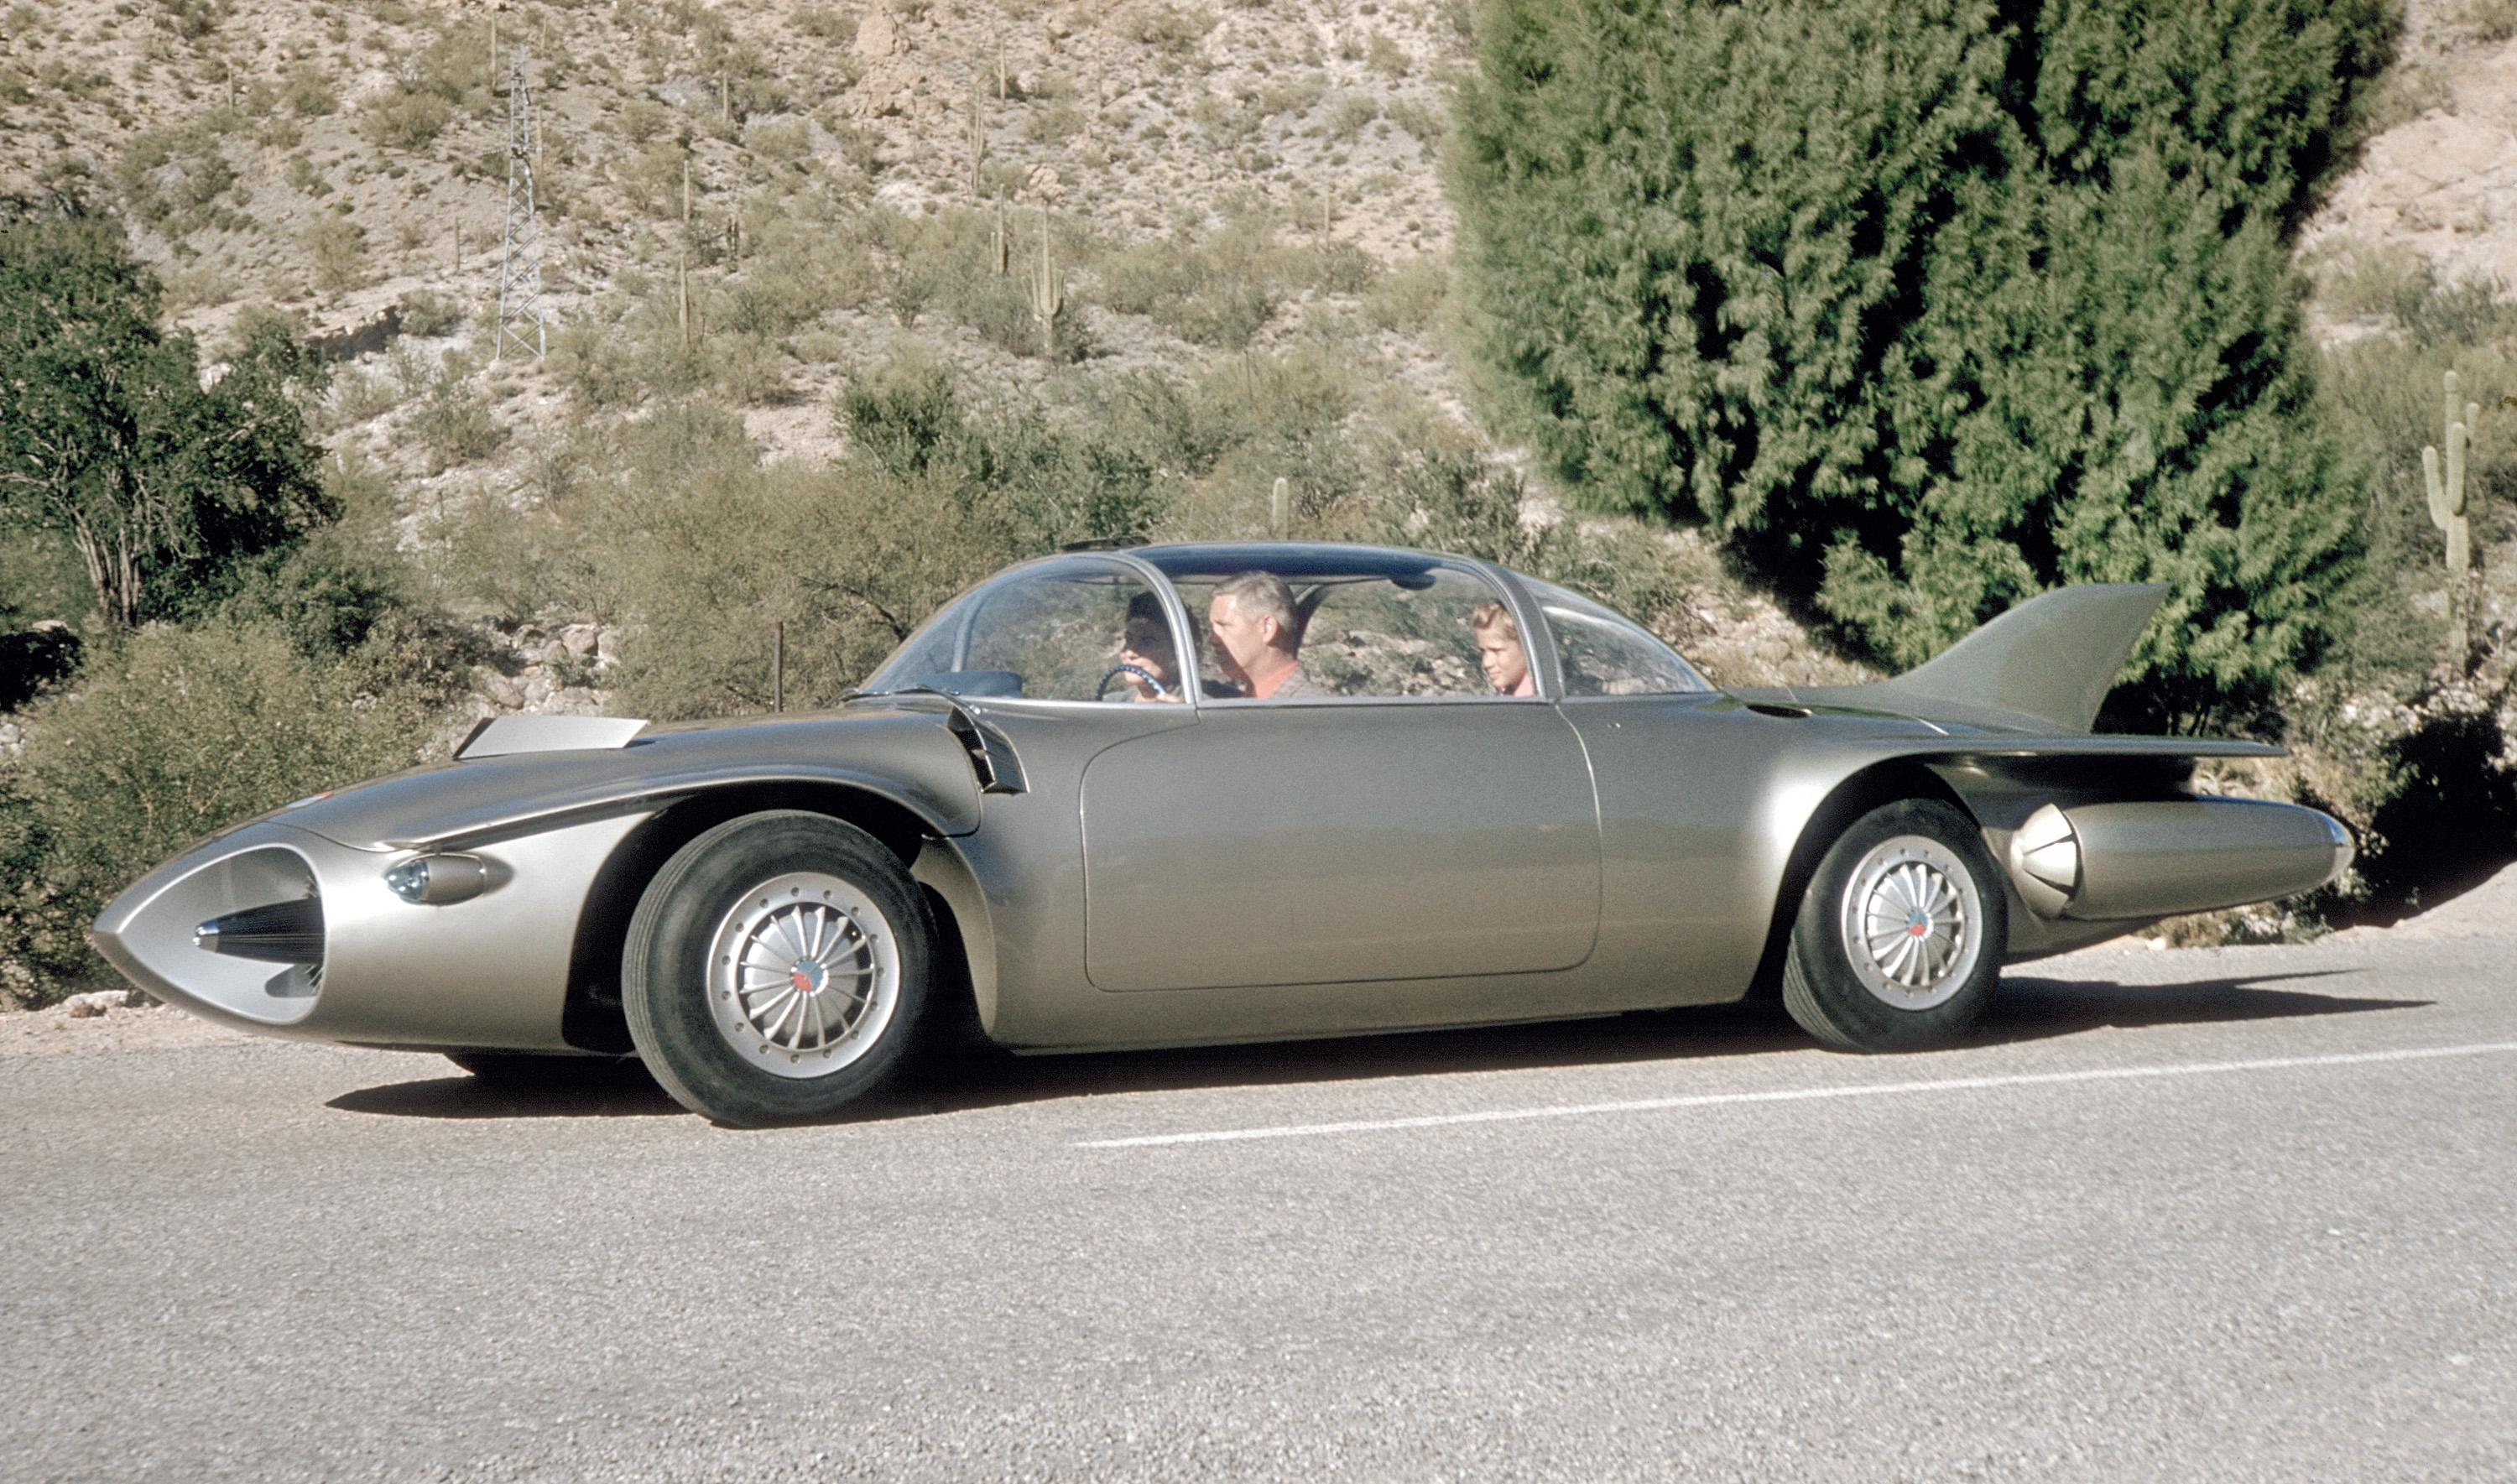 1956 GM Firebird II Concept - it doesn't get any more retro-futuristic than this.jpg